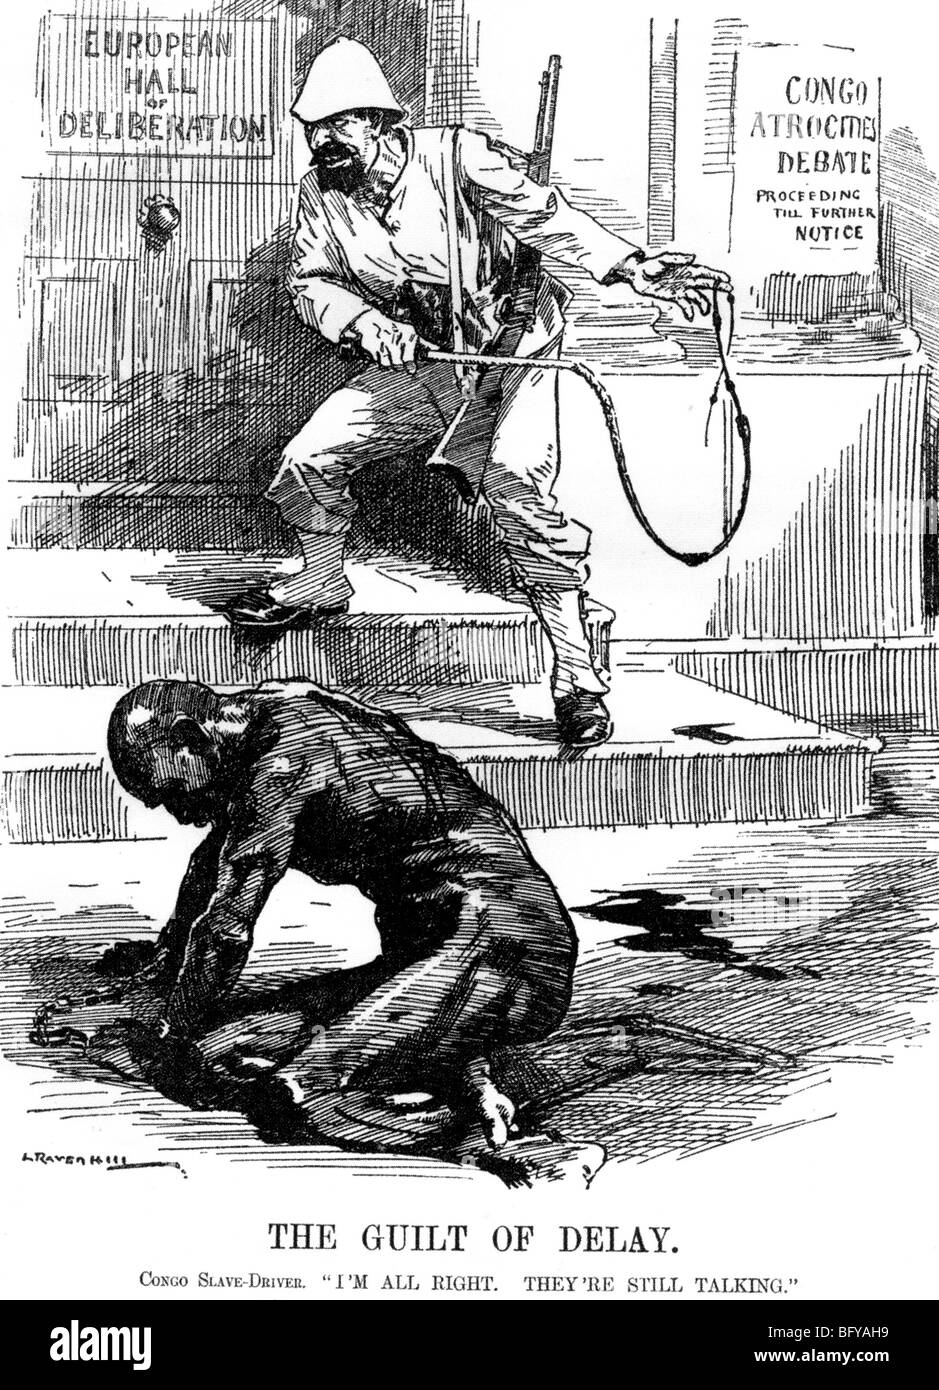 SLAVERY IN THE CONGO  British cartoon criticises delay in outlawing slavery in the Belgian Congo - Stock Image